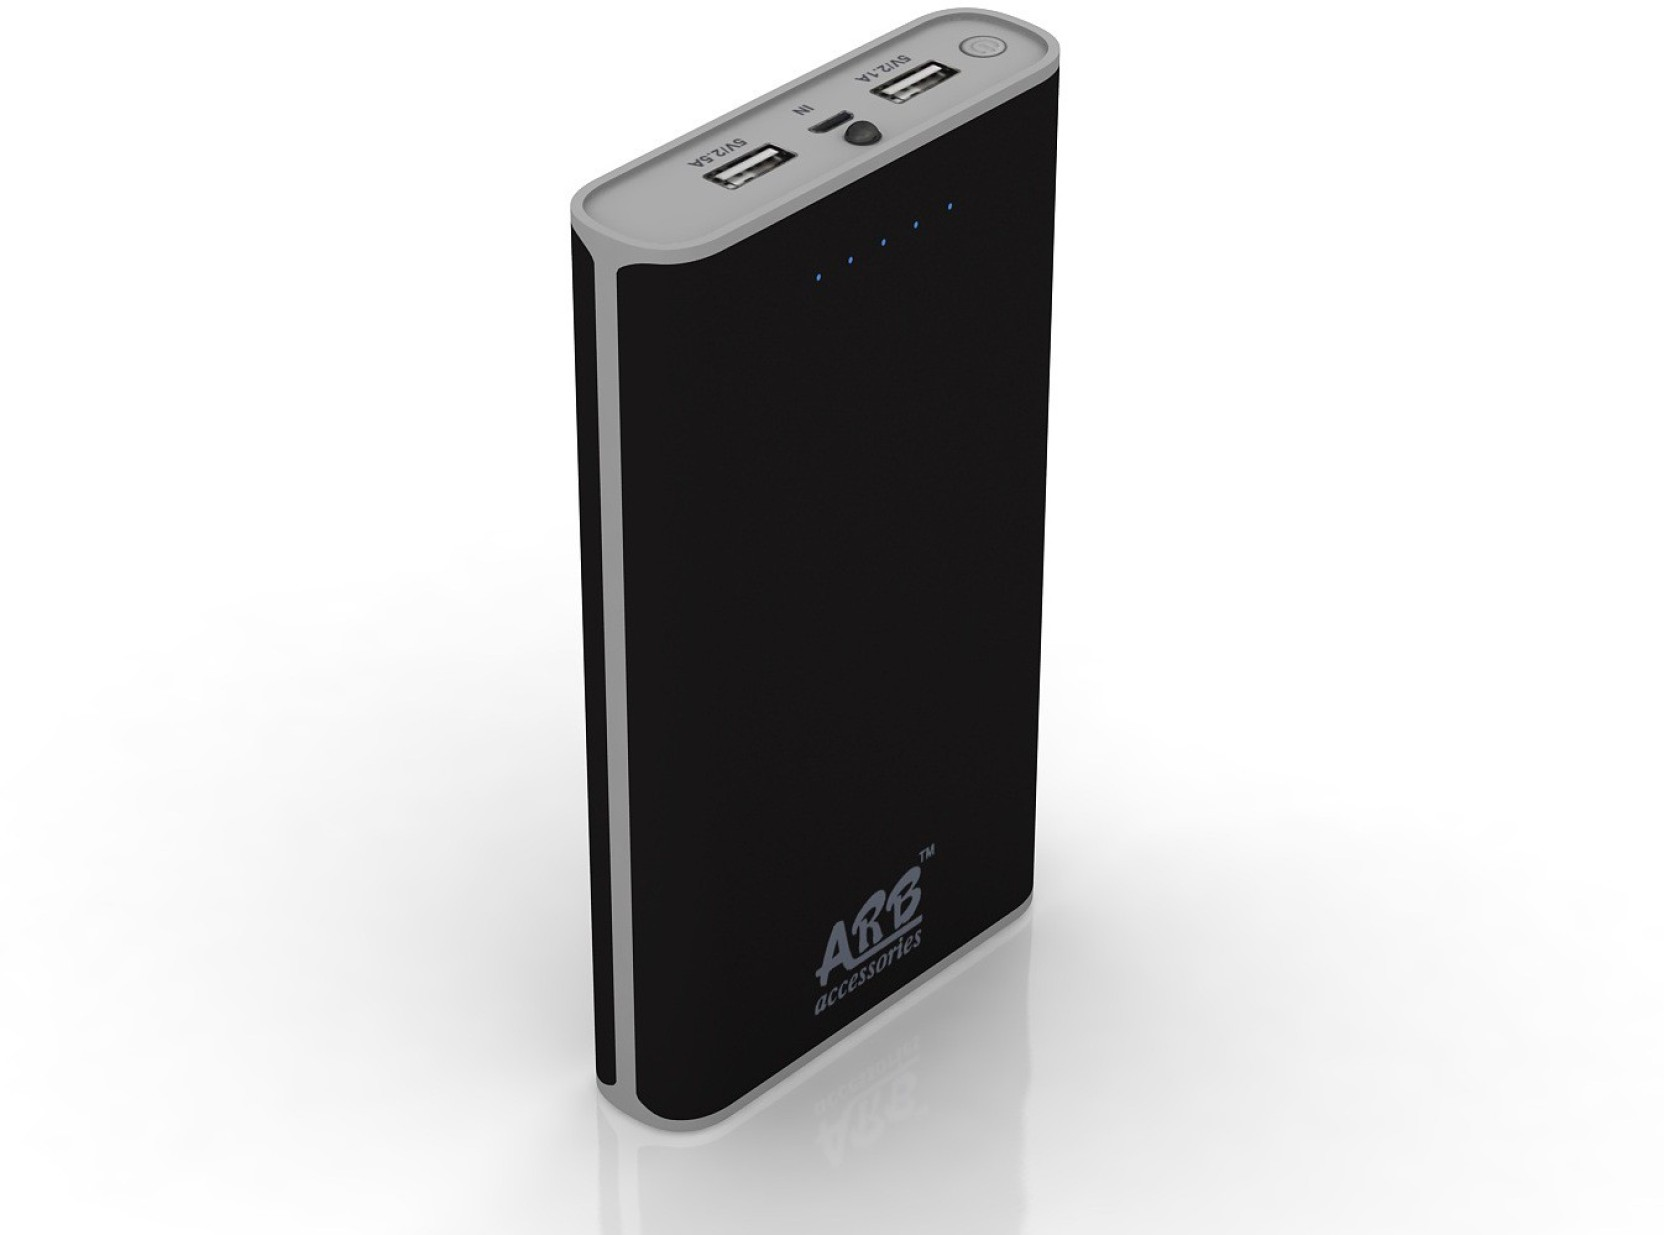 Arb 15600 Mah Power Bank Aa6 With Samsung Lg Cells Fast Set Bra Aa8 Add To Cart